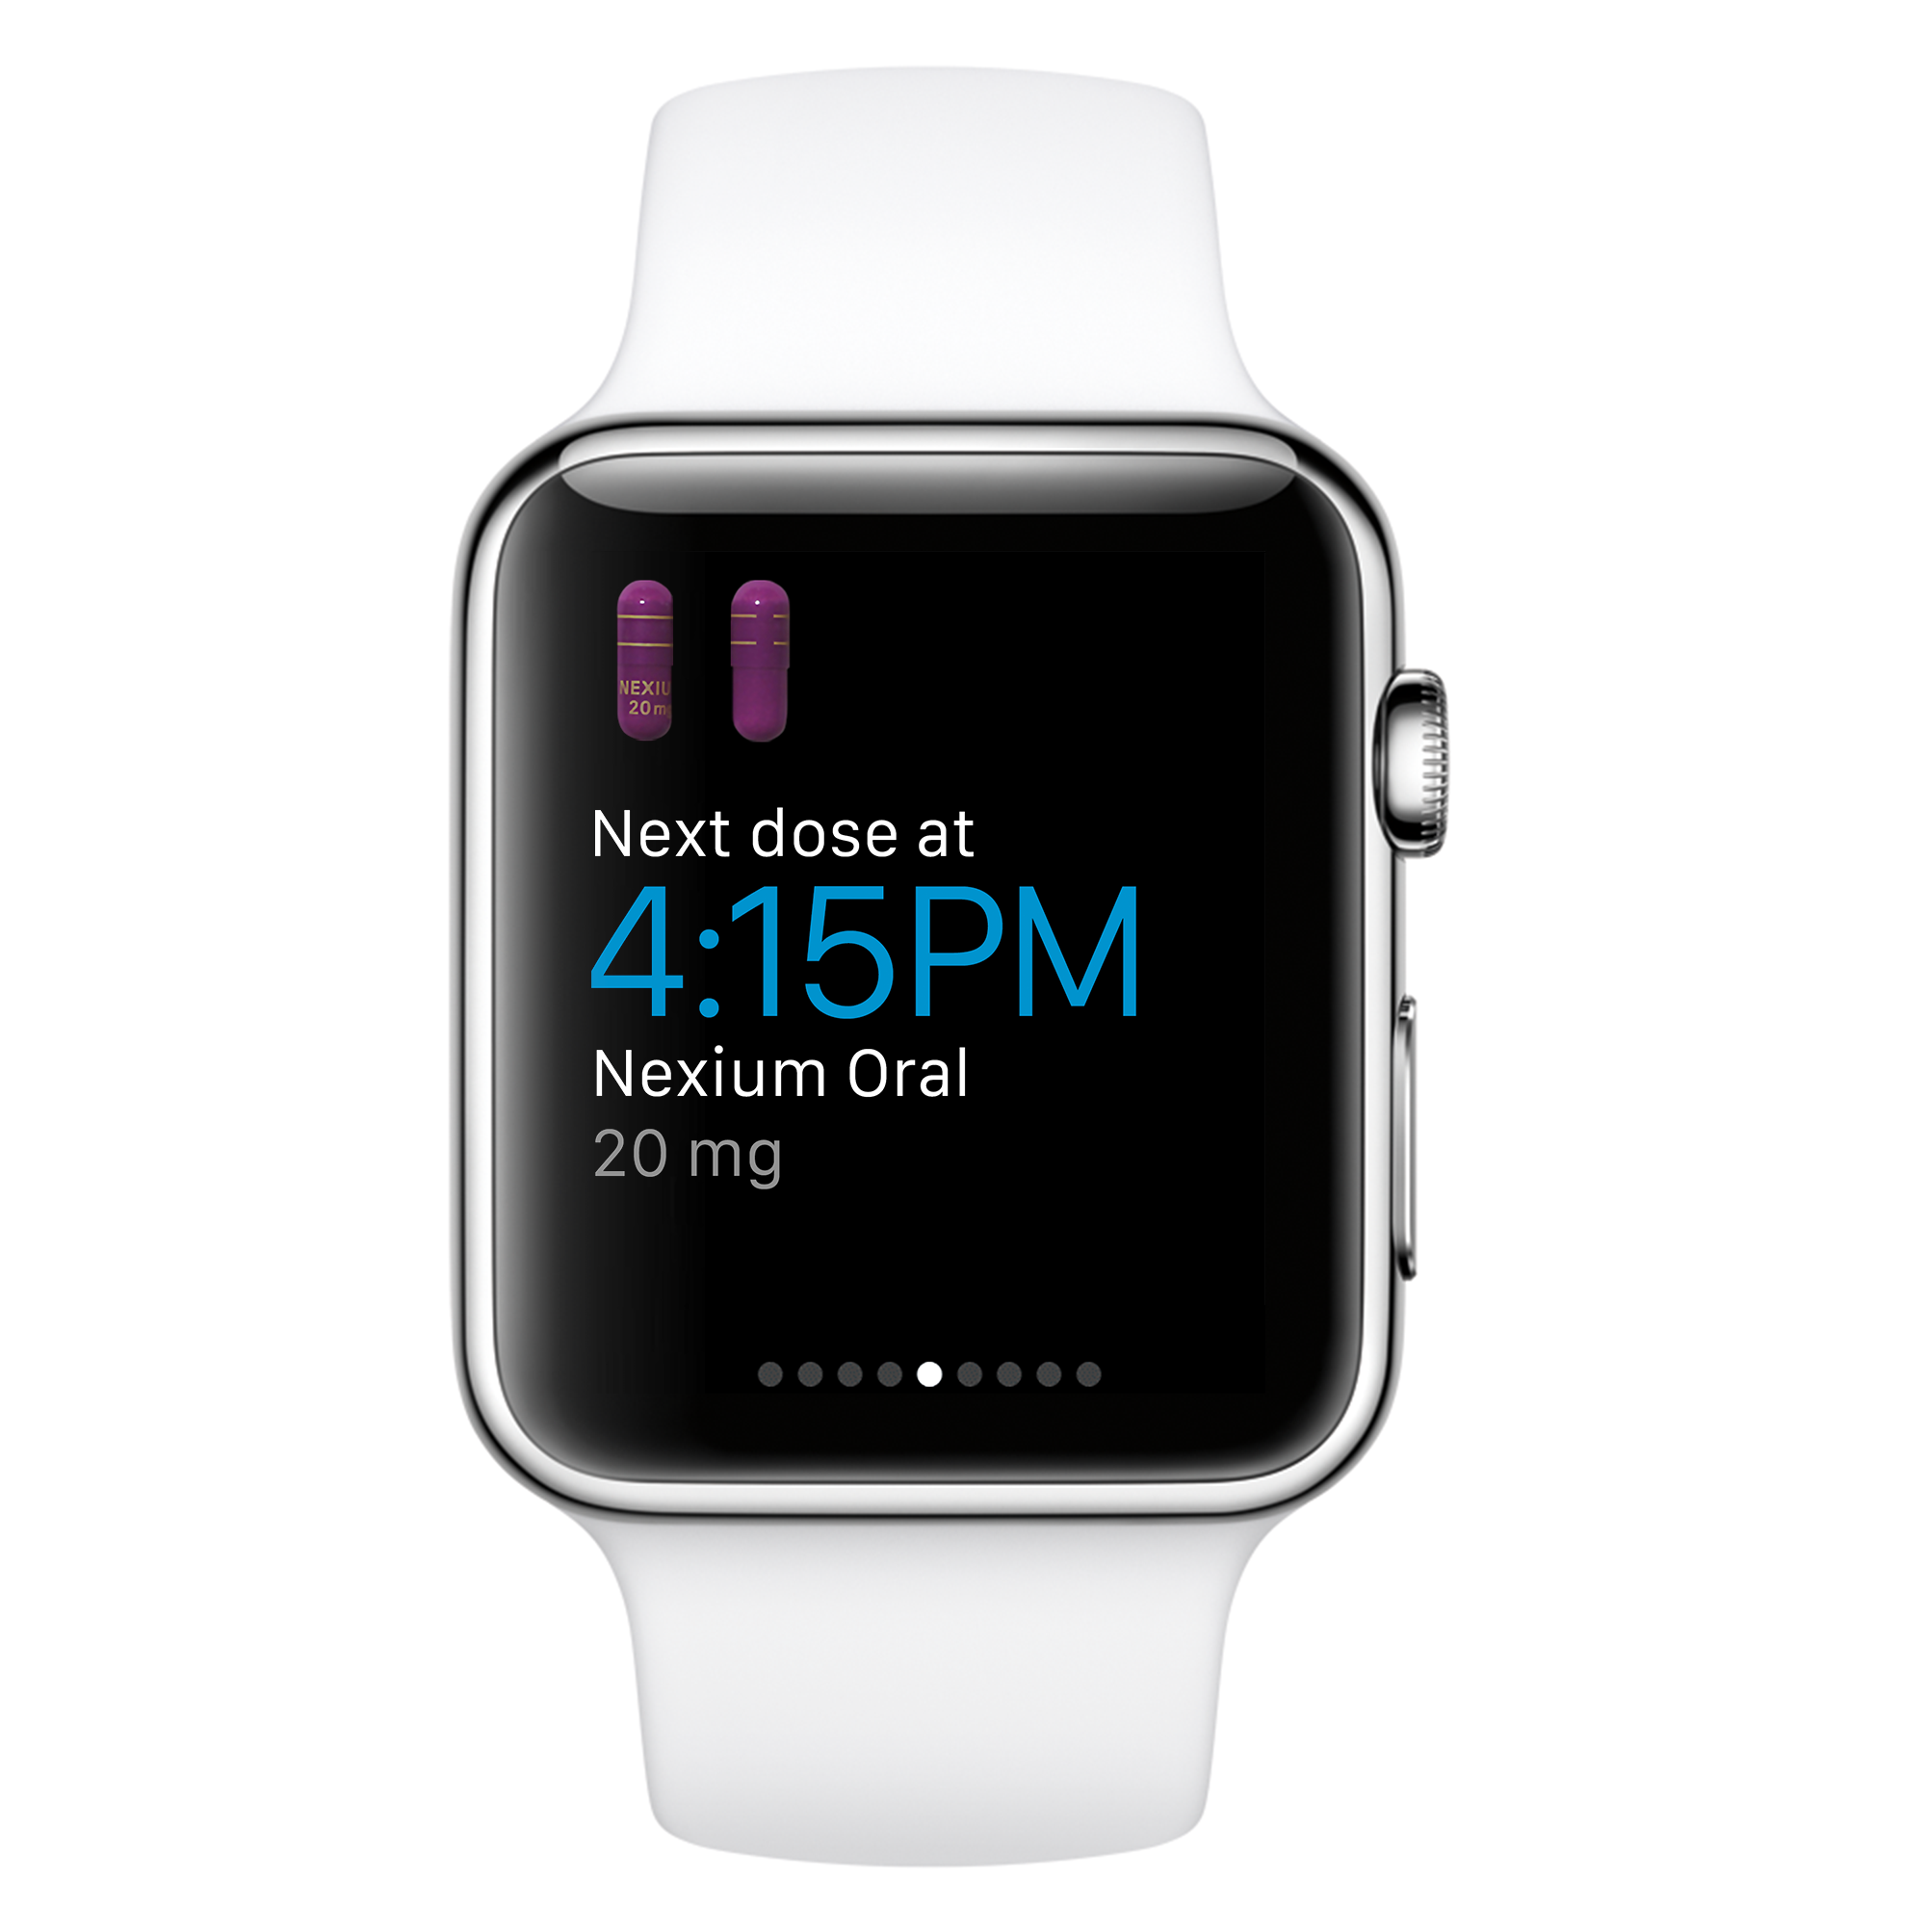 WebMD App Expands with Apple Watch Medication Reminders